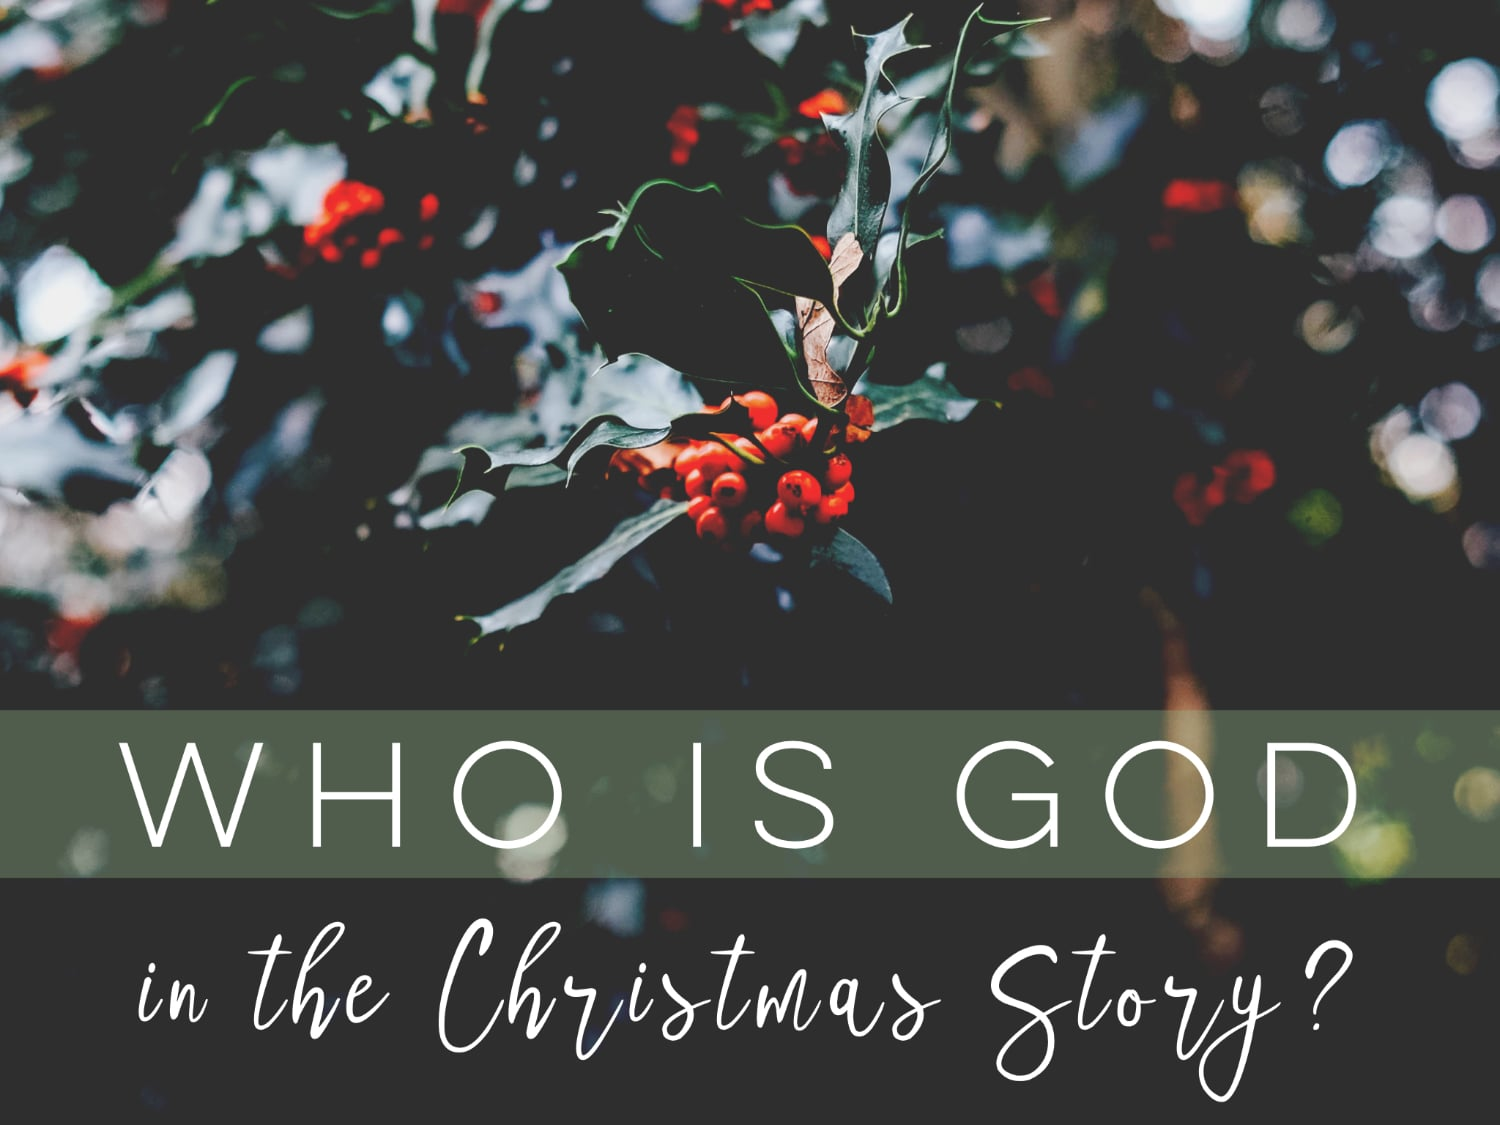 Who is God in the Christmas Story?